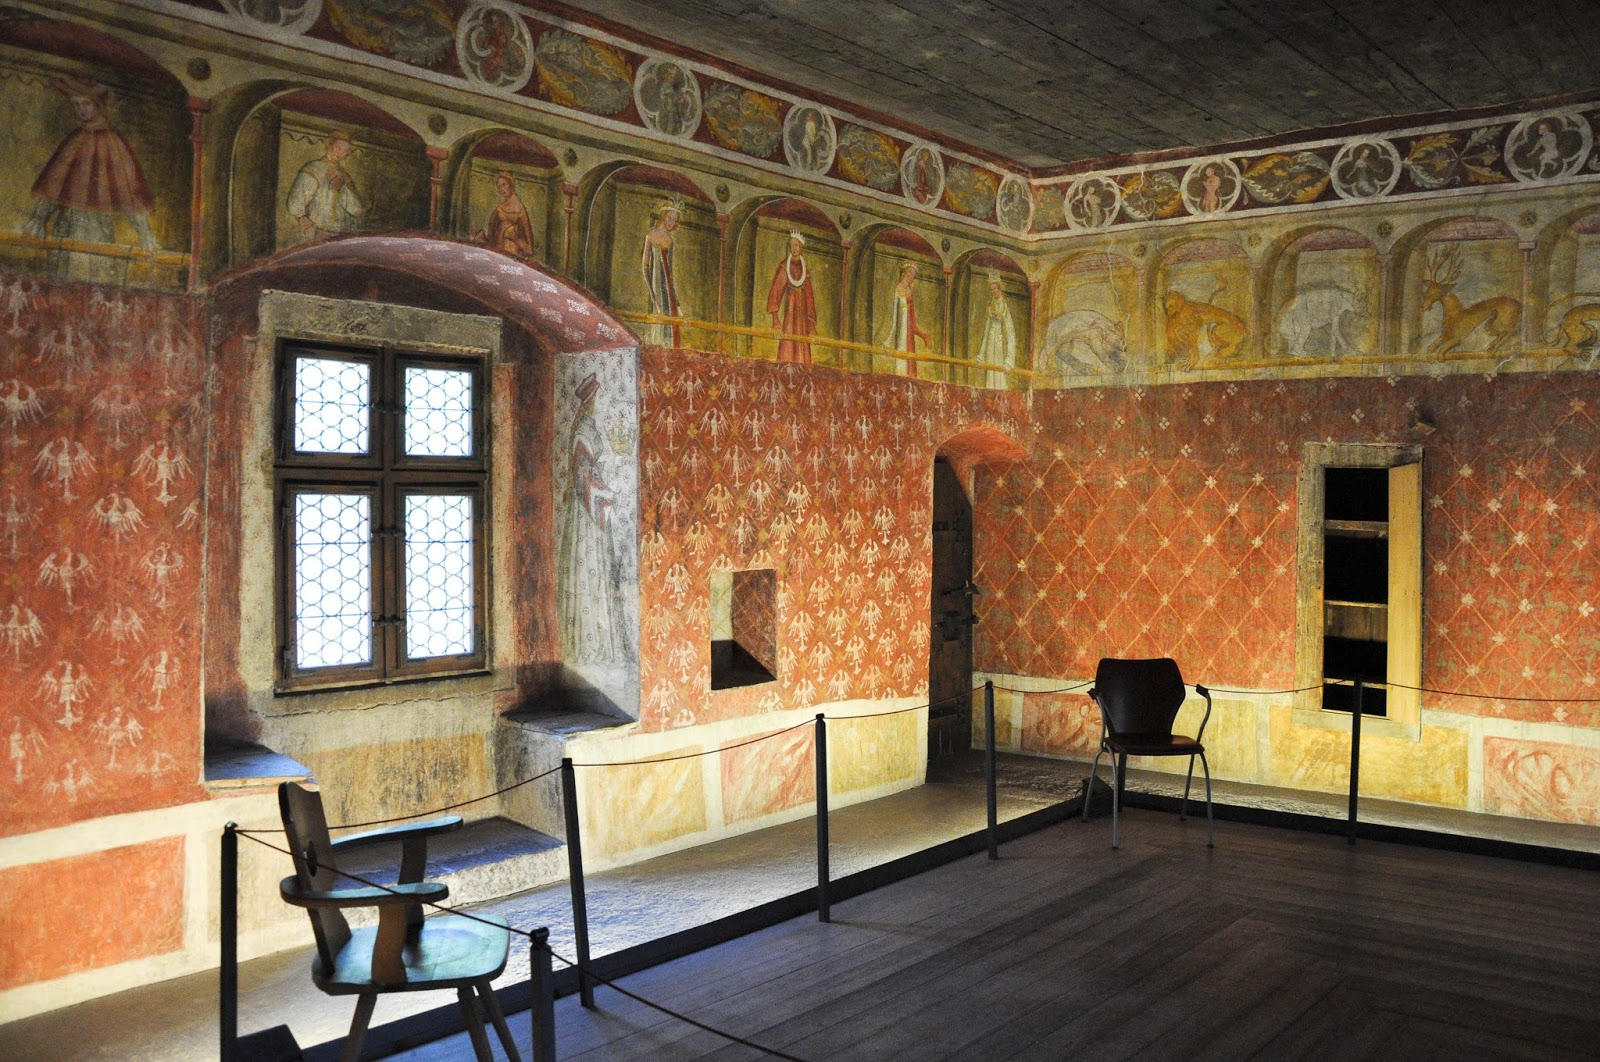 Frescoed room, Runkelstein Castle, Bolzano, South Tyrol, Italy